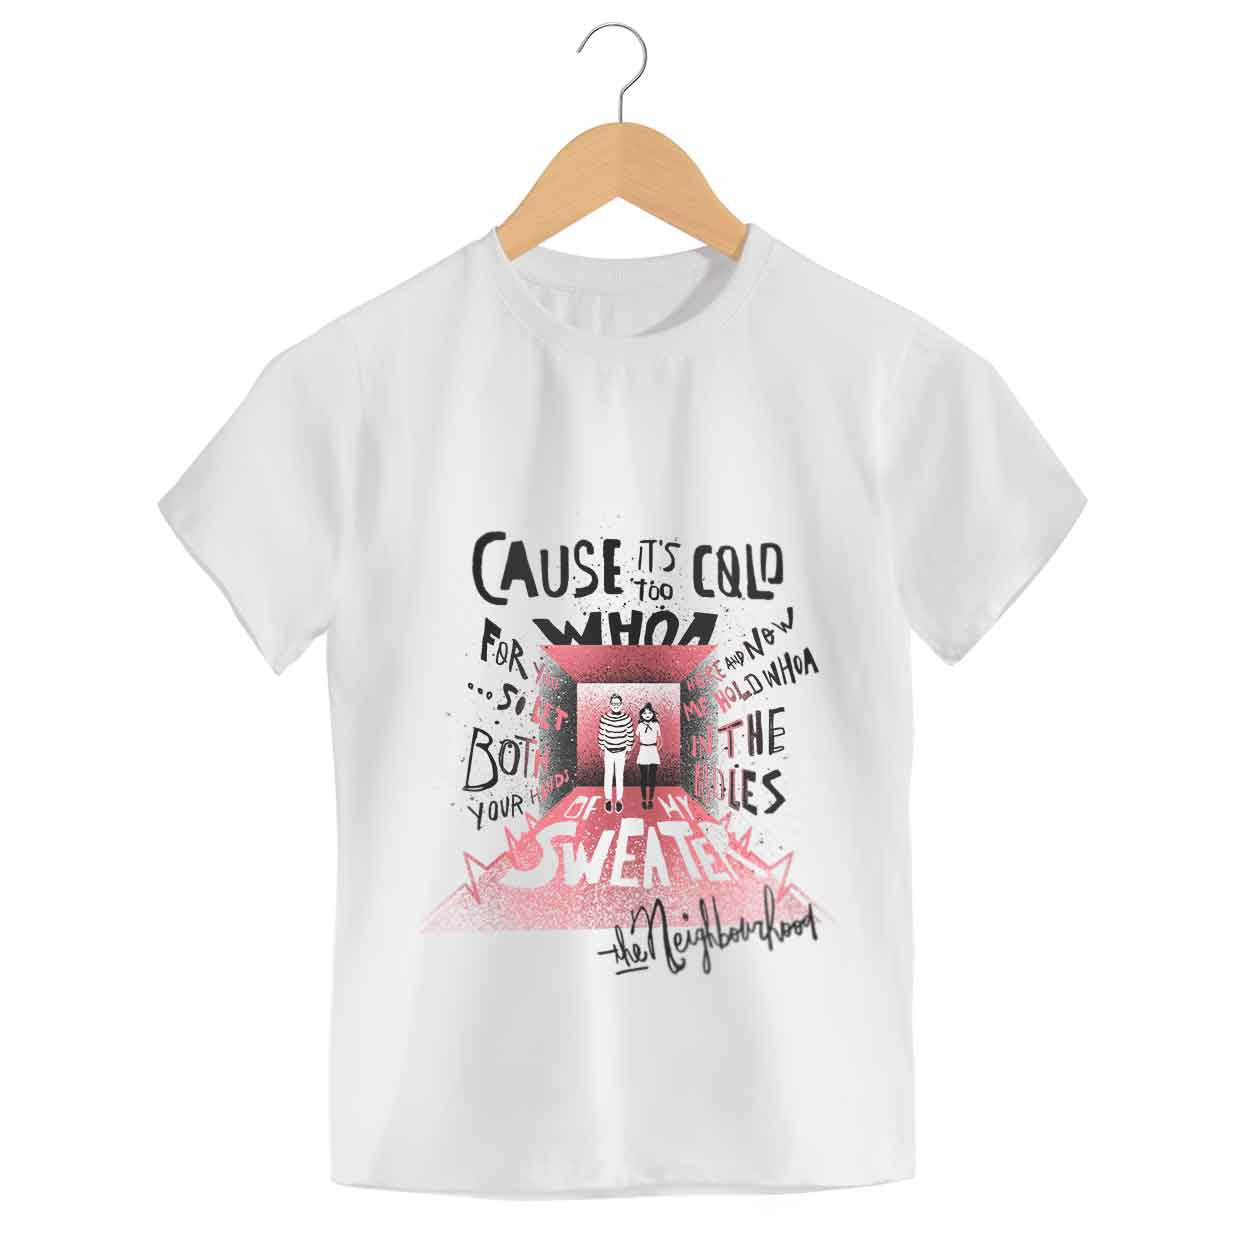 Camiseta Sweater Weather - The Neighbourhood - Infantil